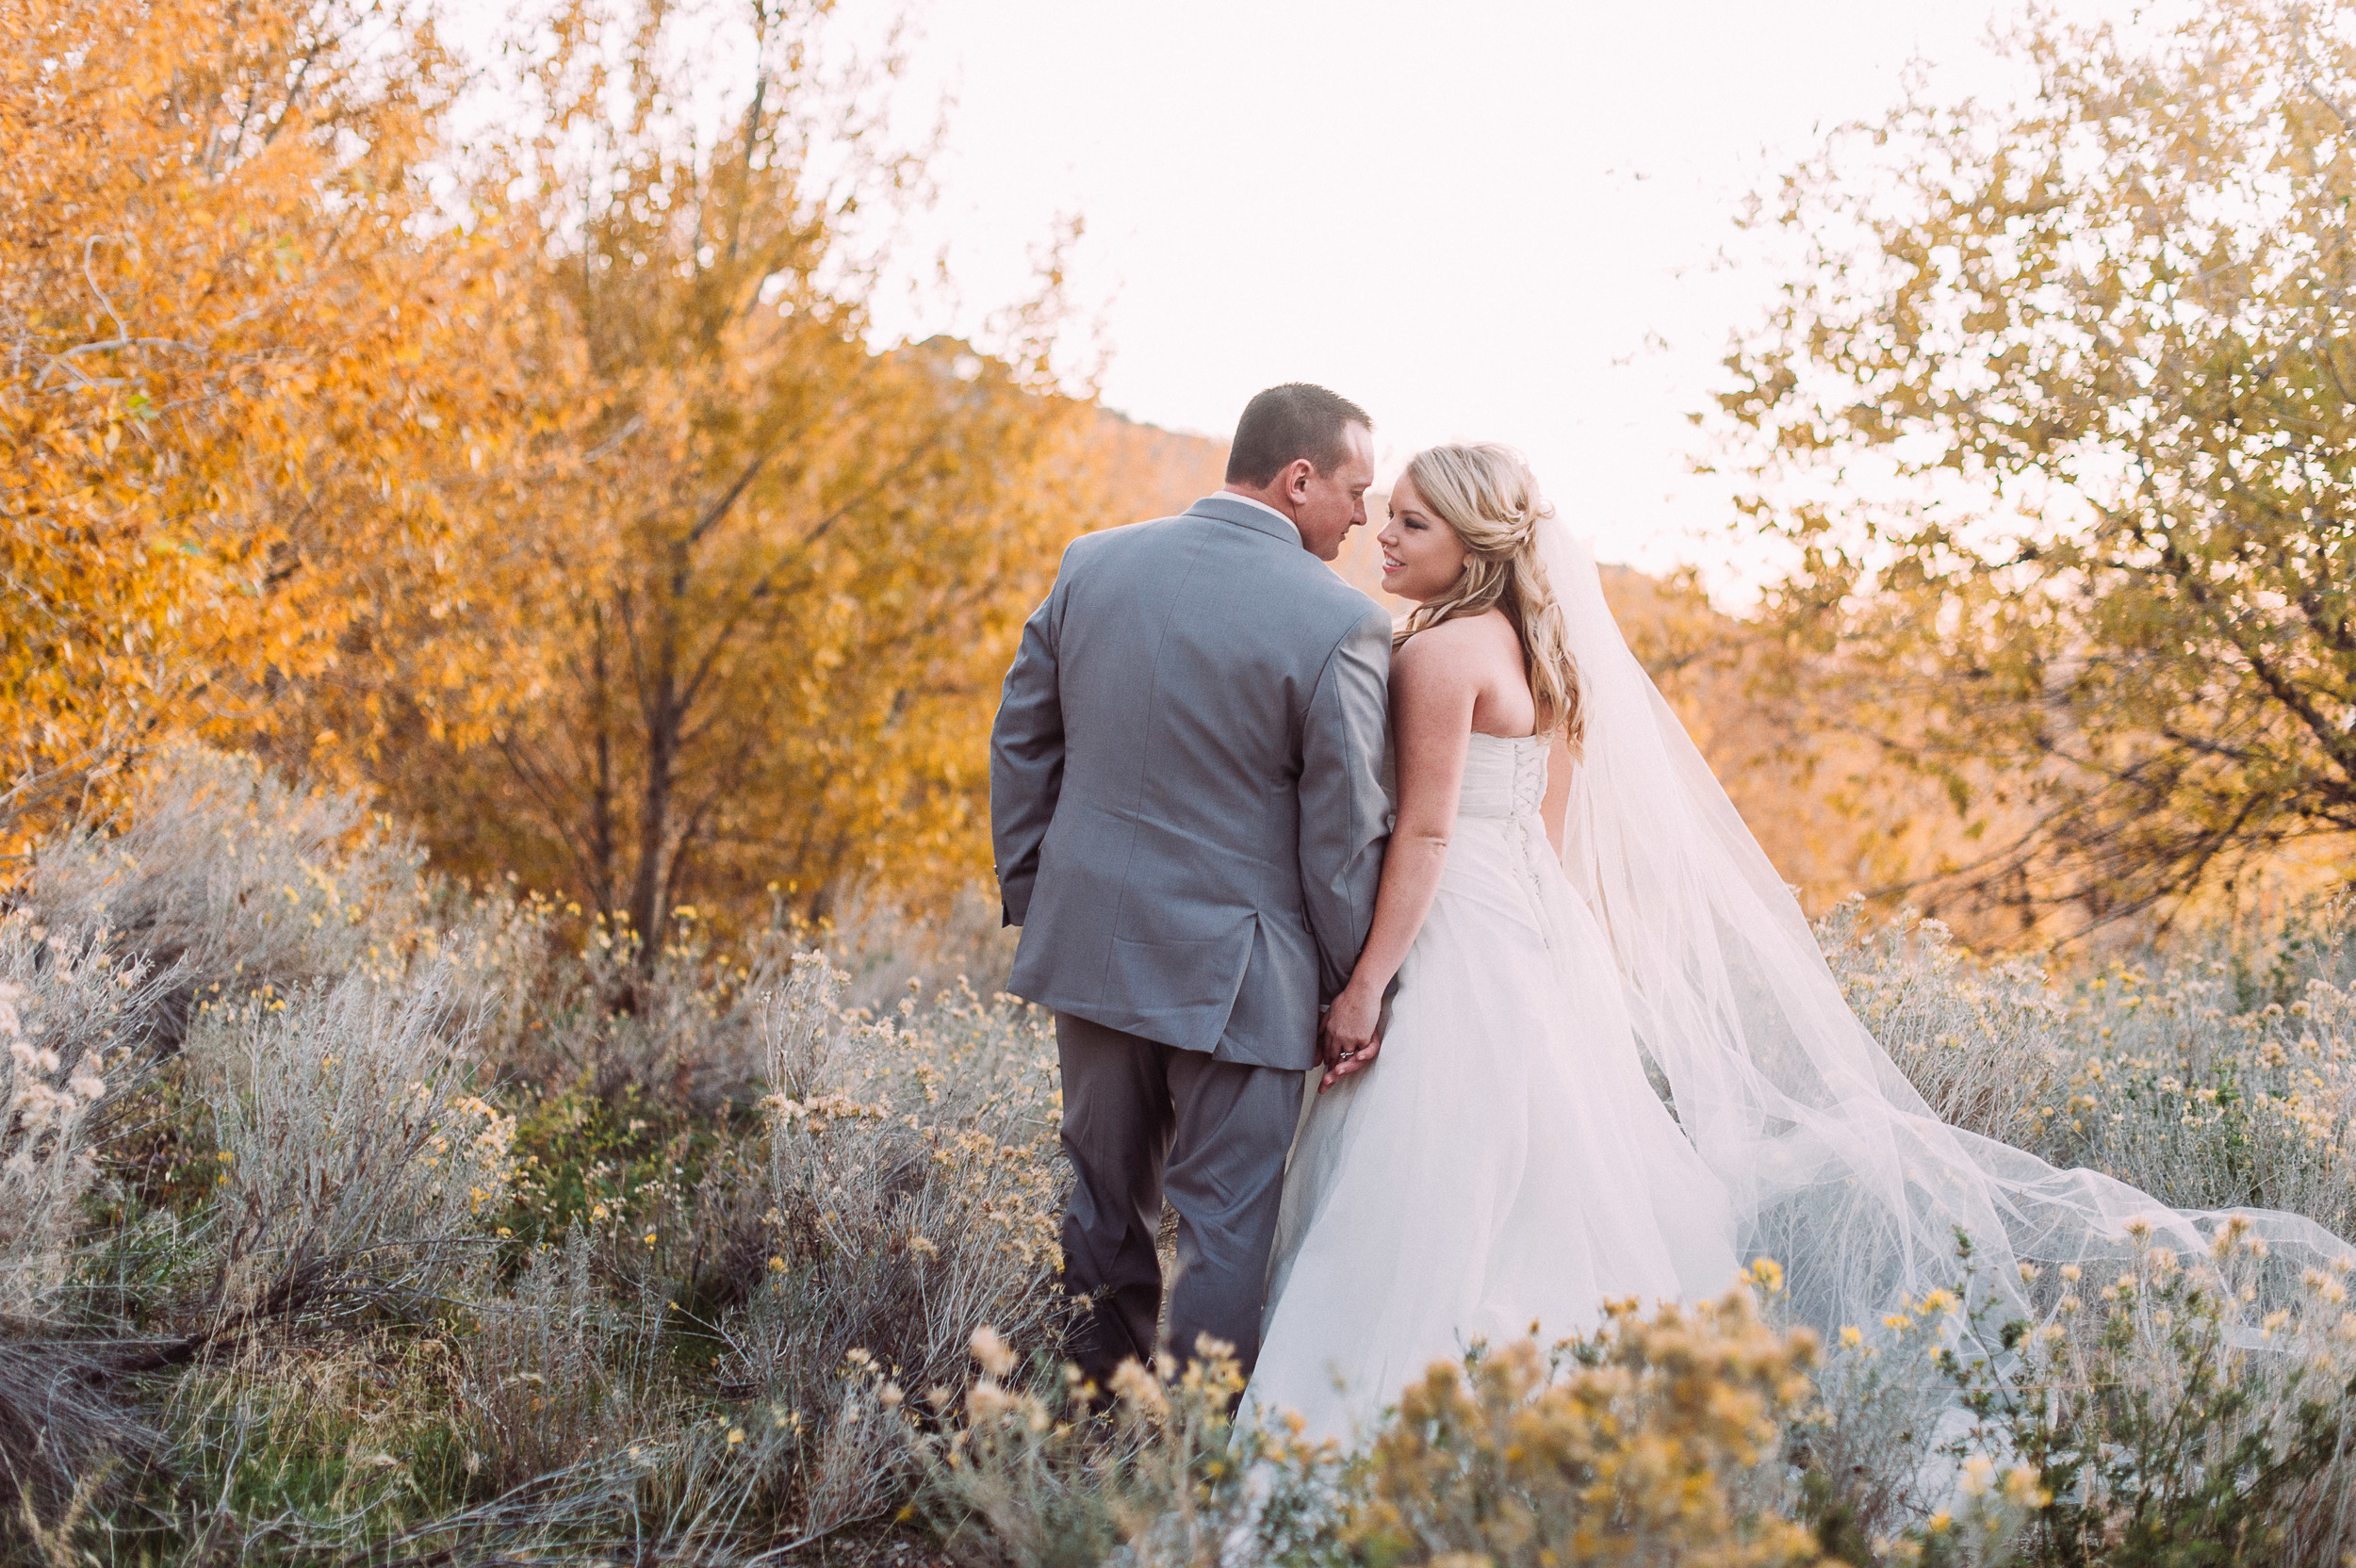 2016 Debi Rae Photography - Colorado Photographer - weddings , families , family , newborn , engagements , couples , elopement  (3 of 5).jpg